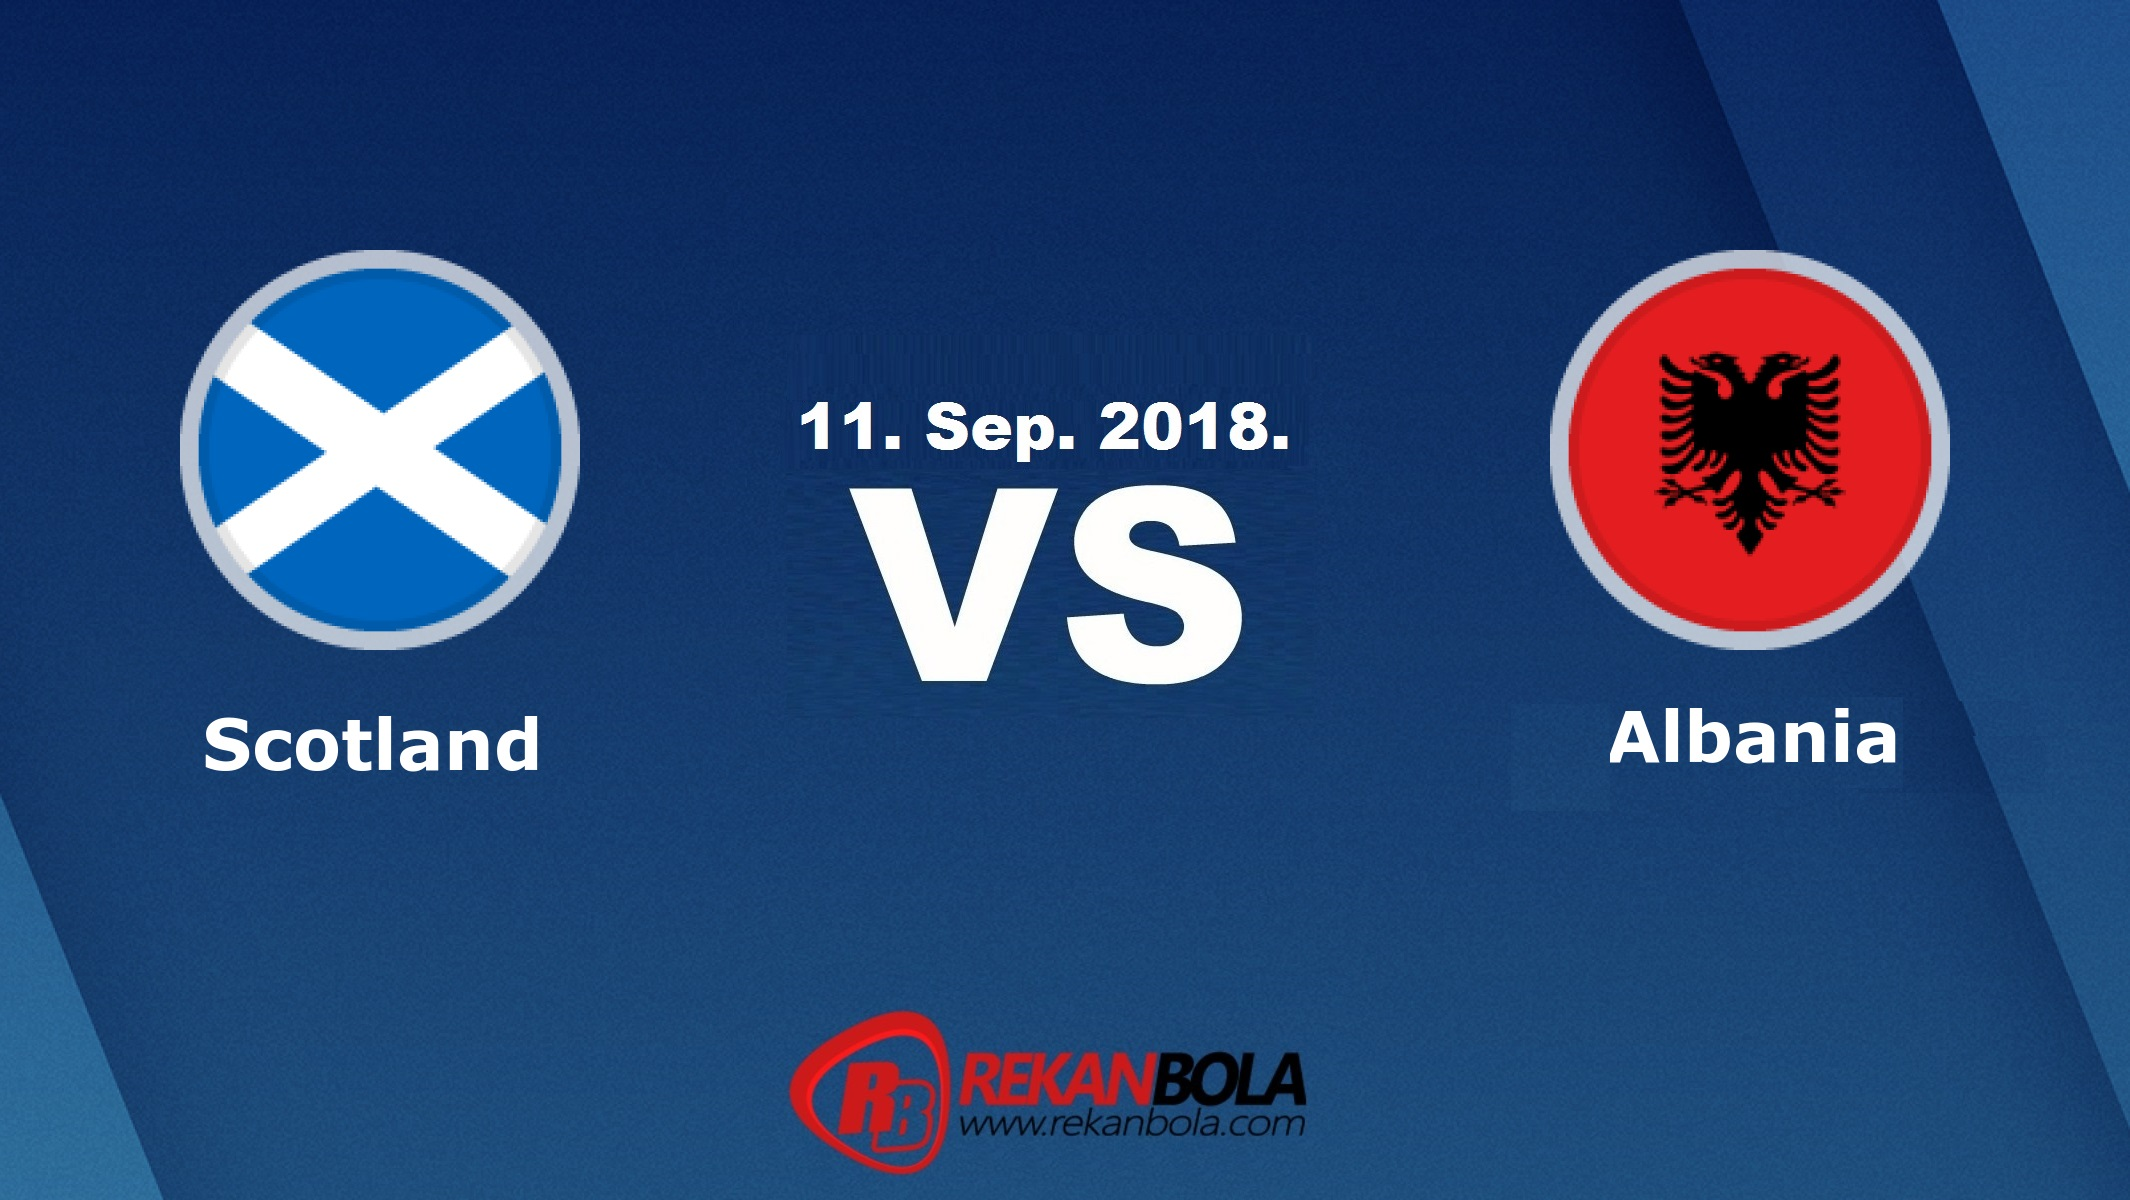 Nonton Siaran Live Streaming Skotlandia Vs Albania 11 September 2018